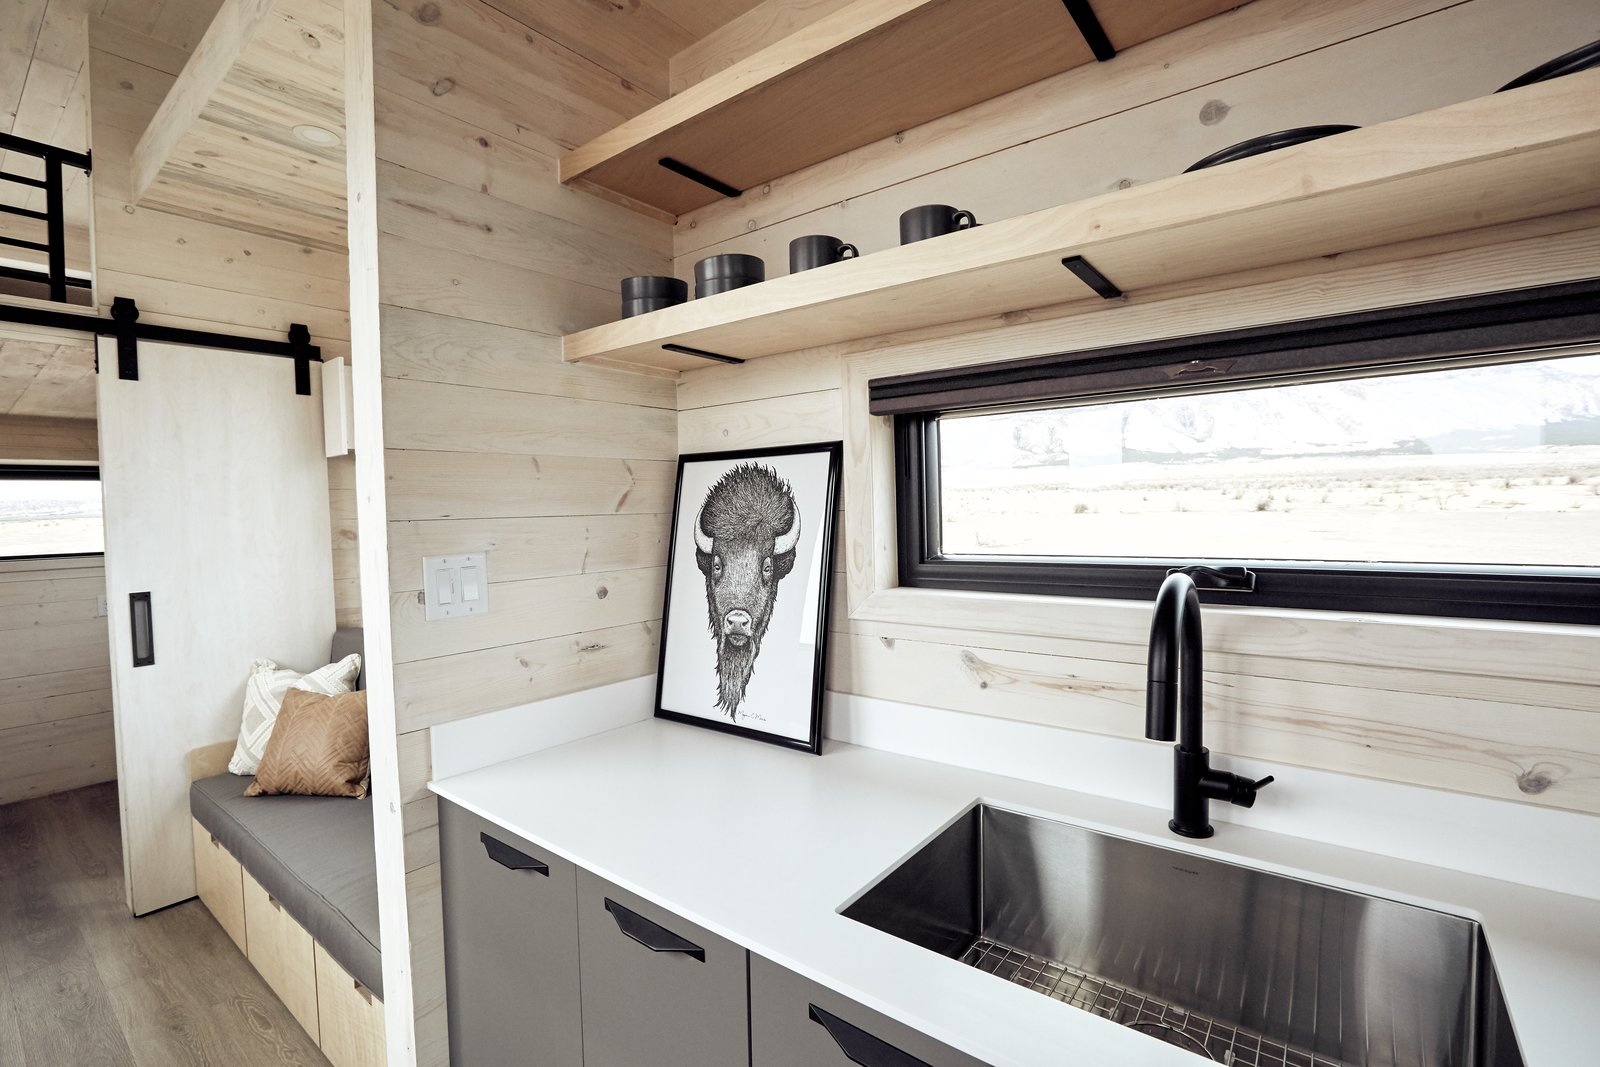 Kitchen and Undermount Sink The kitchen and living areas are integrated together inside the large main room, yet each can still function as its own autonomous zone.    Photo 8 of 14 in This Sleek Travel Trailer Is Practically a Cabin on Wheels from Land Ark RV - Drake